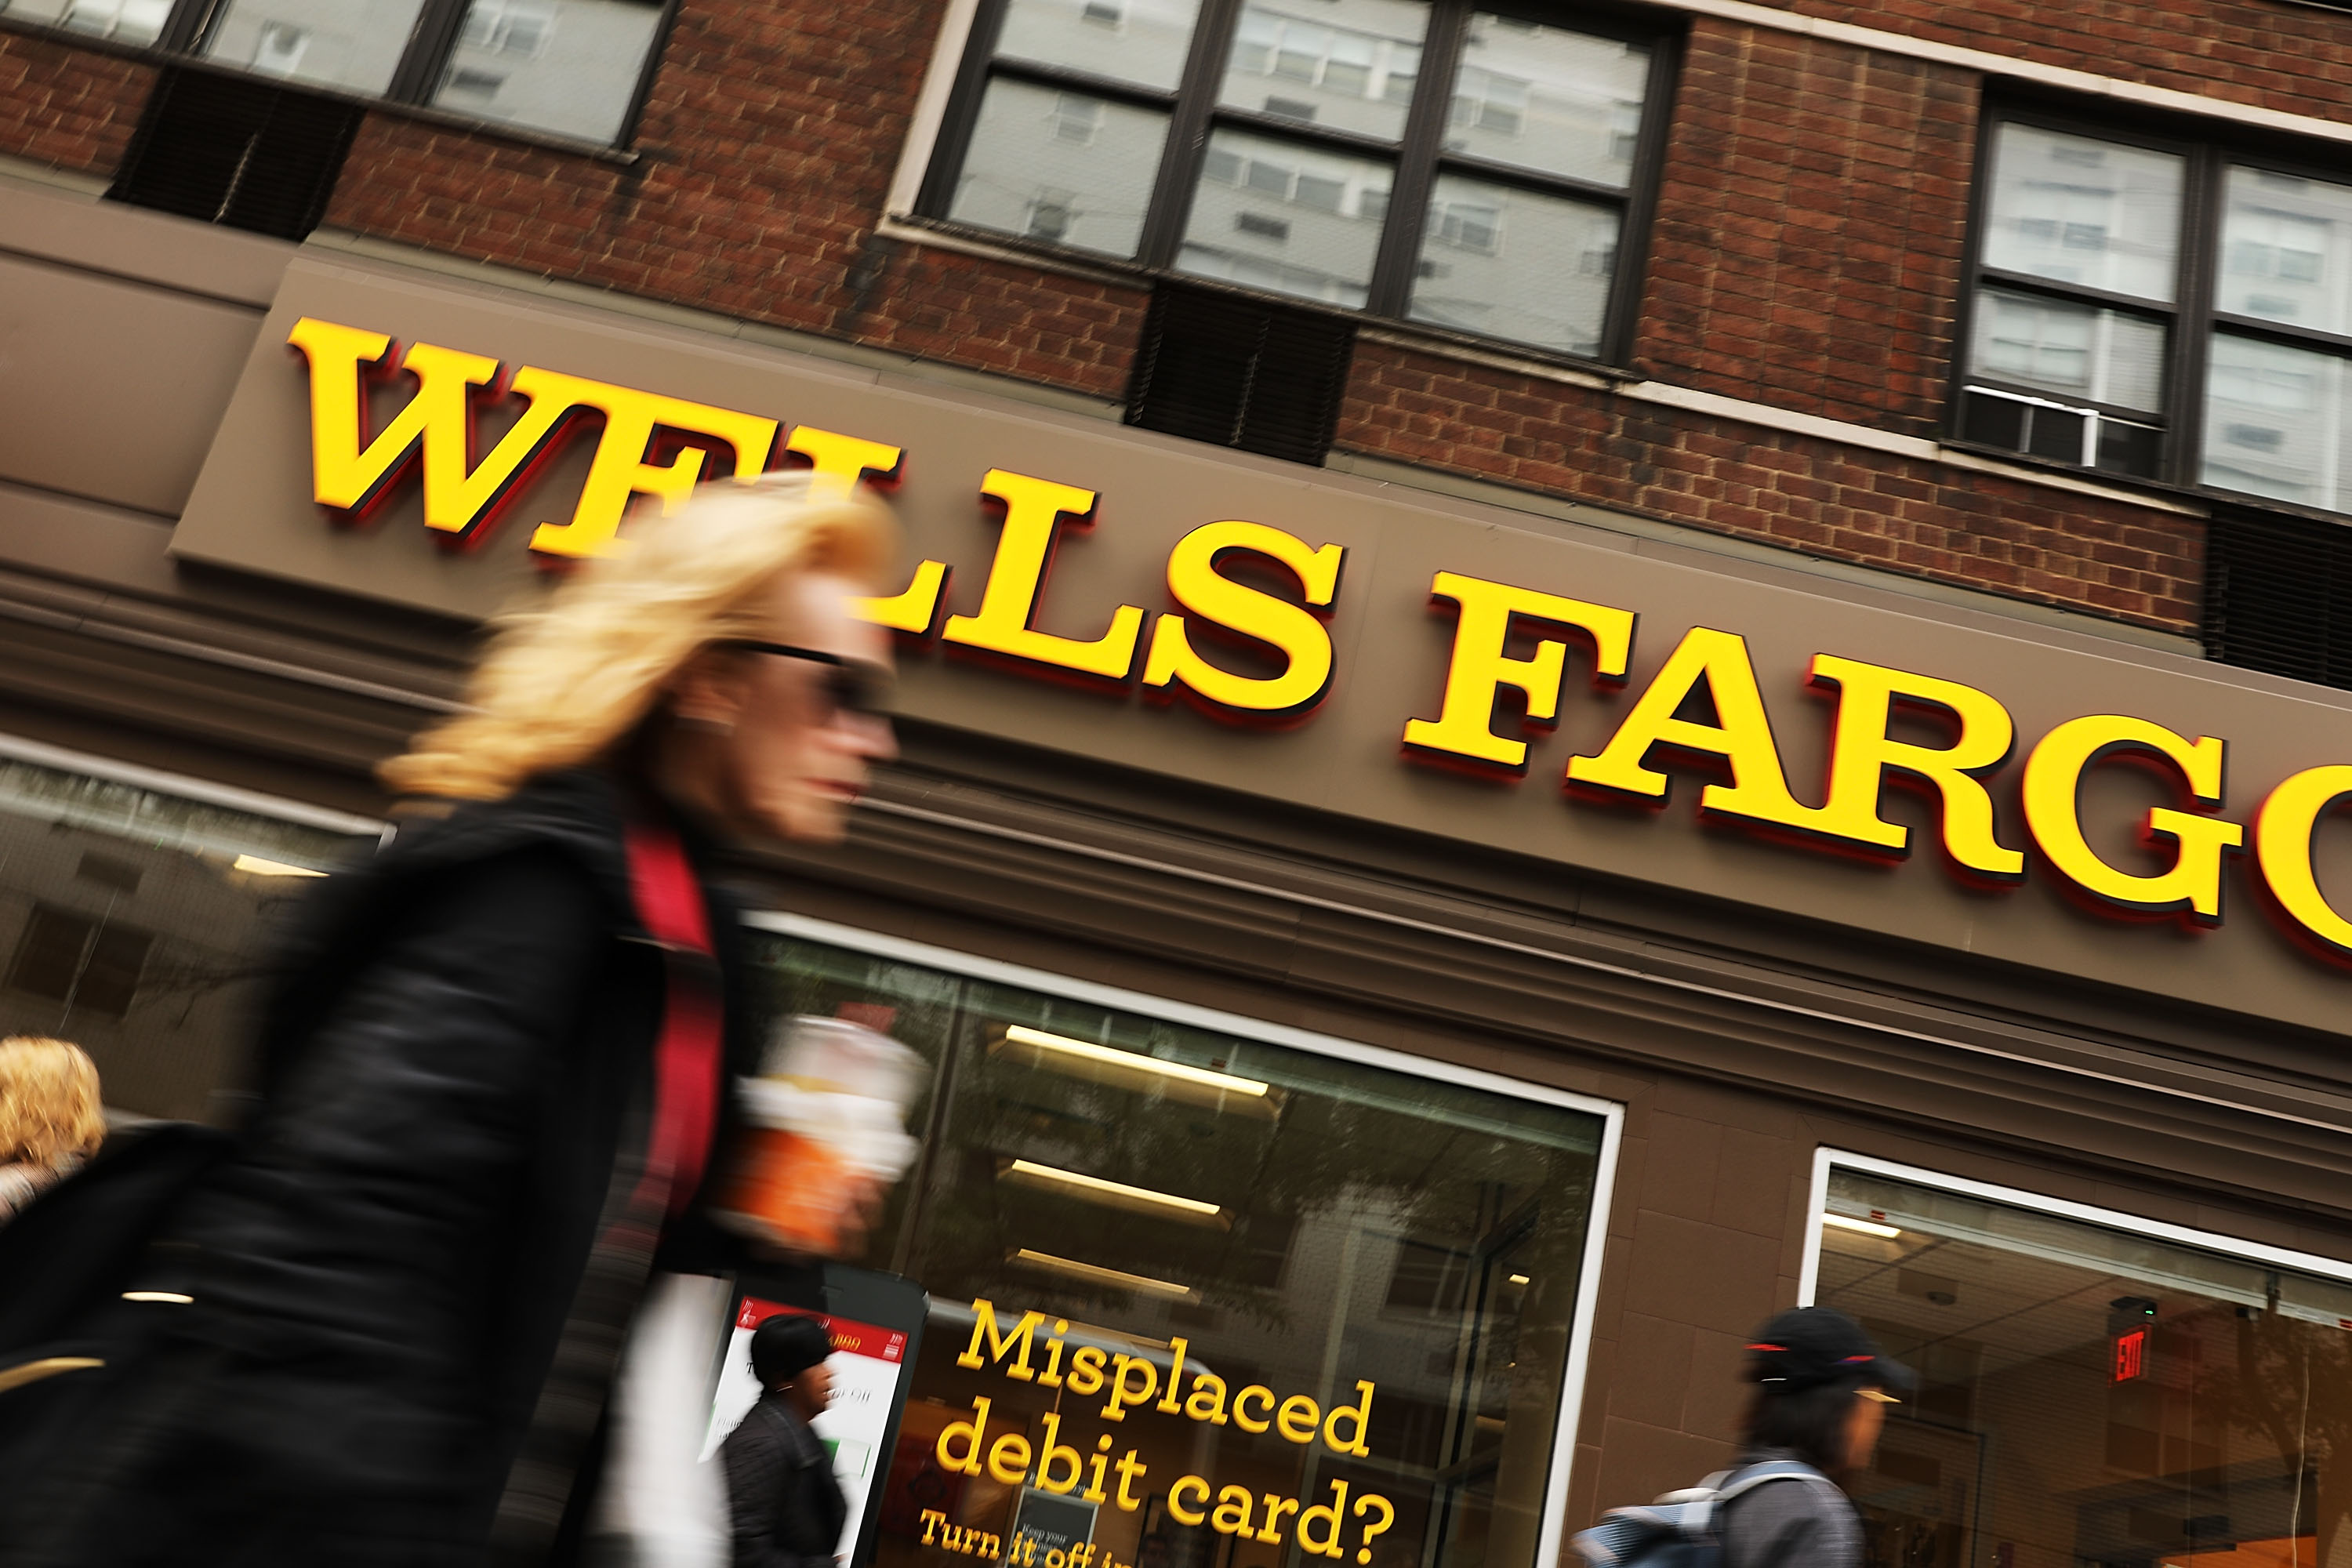 Wells Fargo cheated millions of customers. The Republican tax bill is about to hand it a big win.